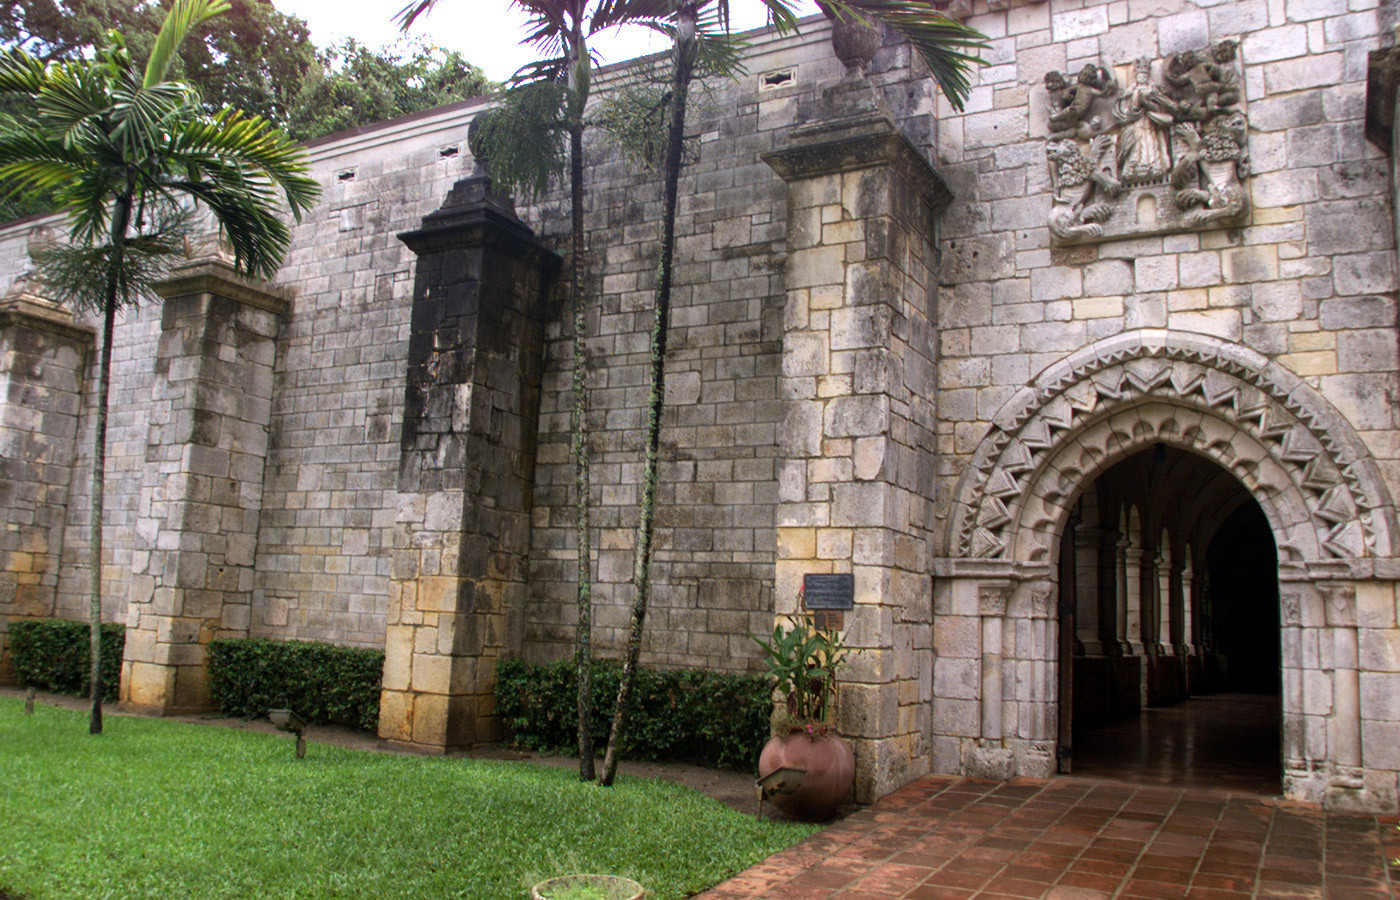 Things every South Floridian should do once - Ancient Spanish Monastery in North Miami Beach